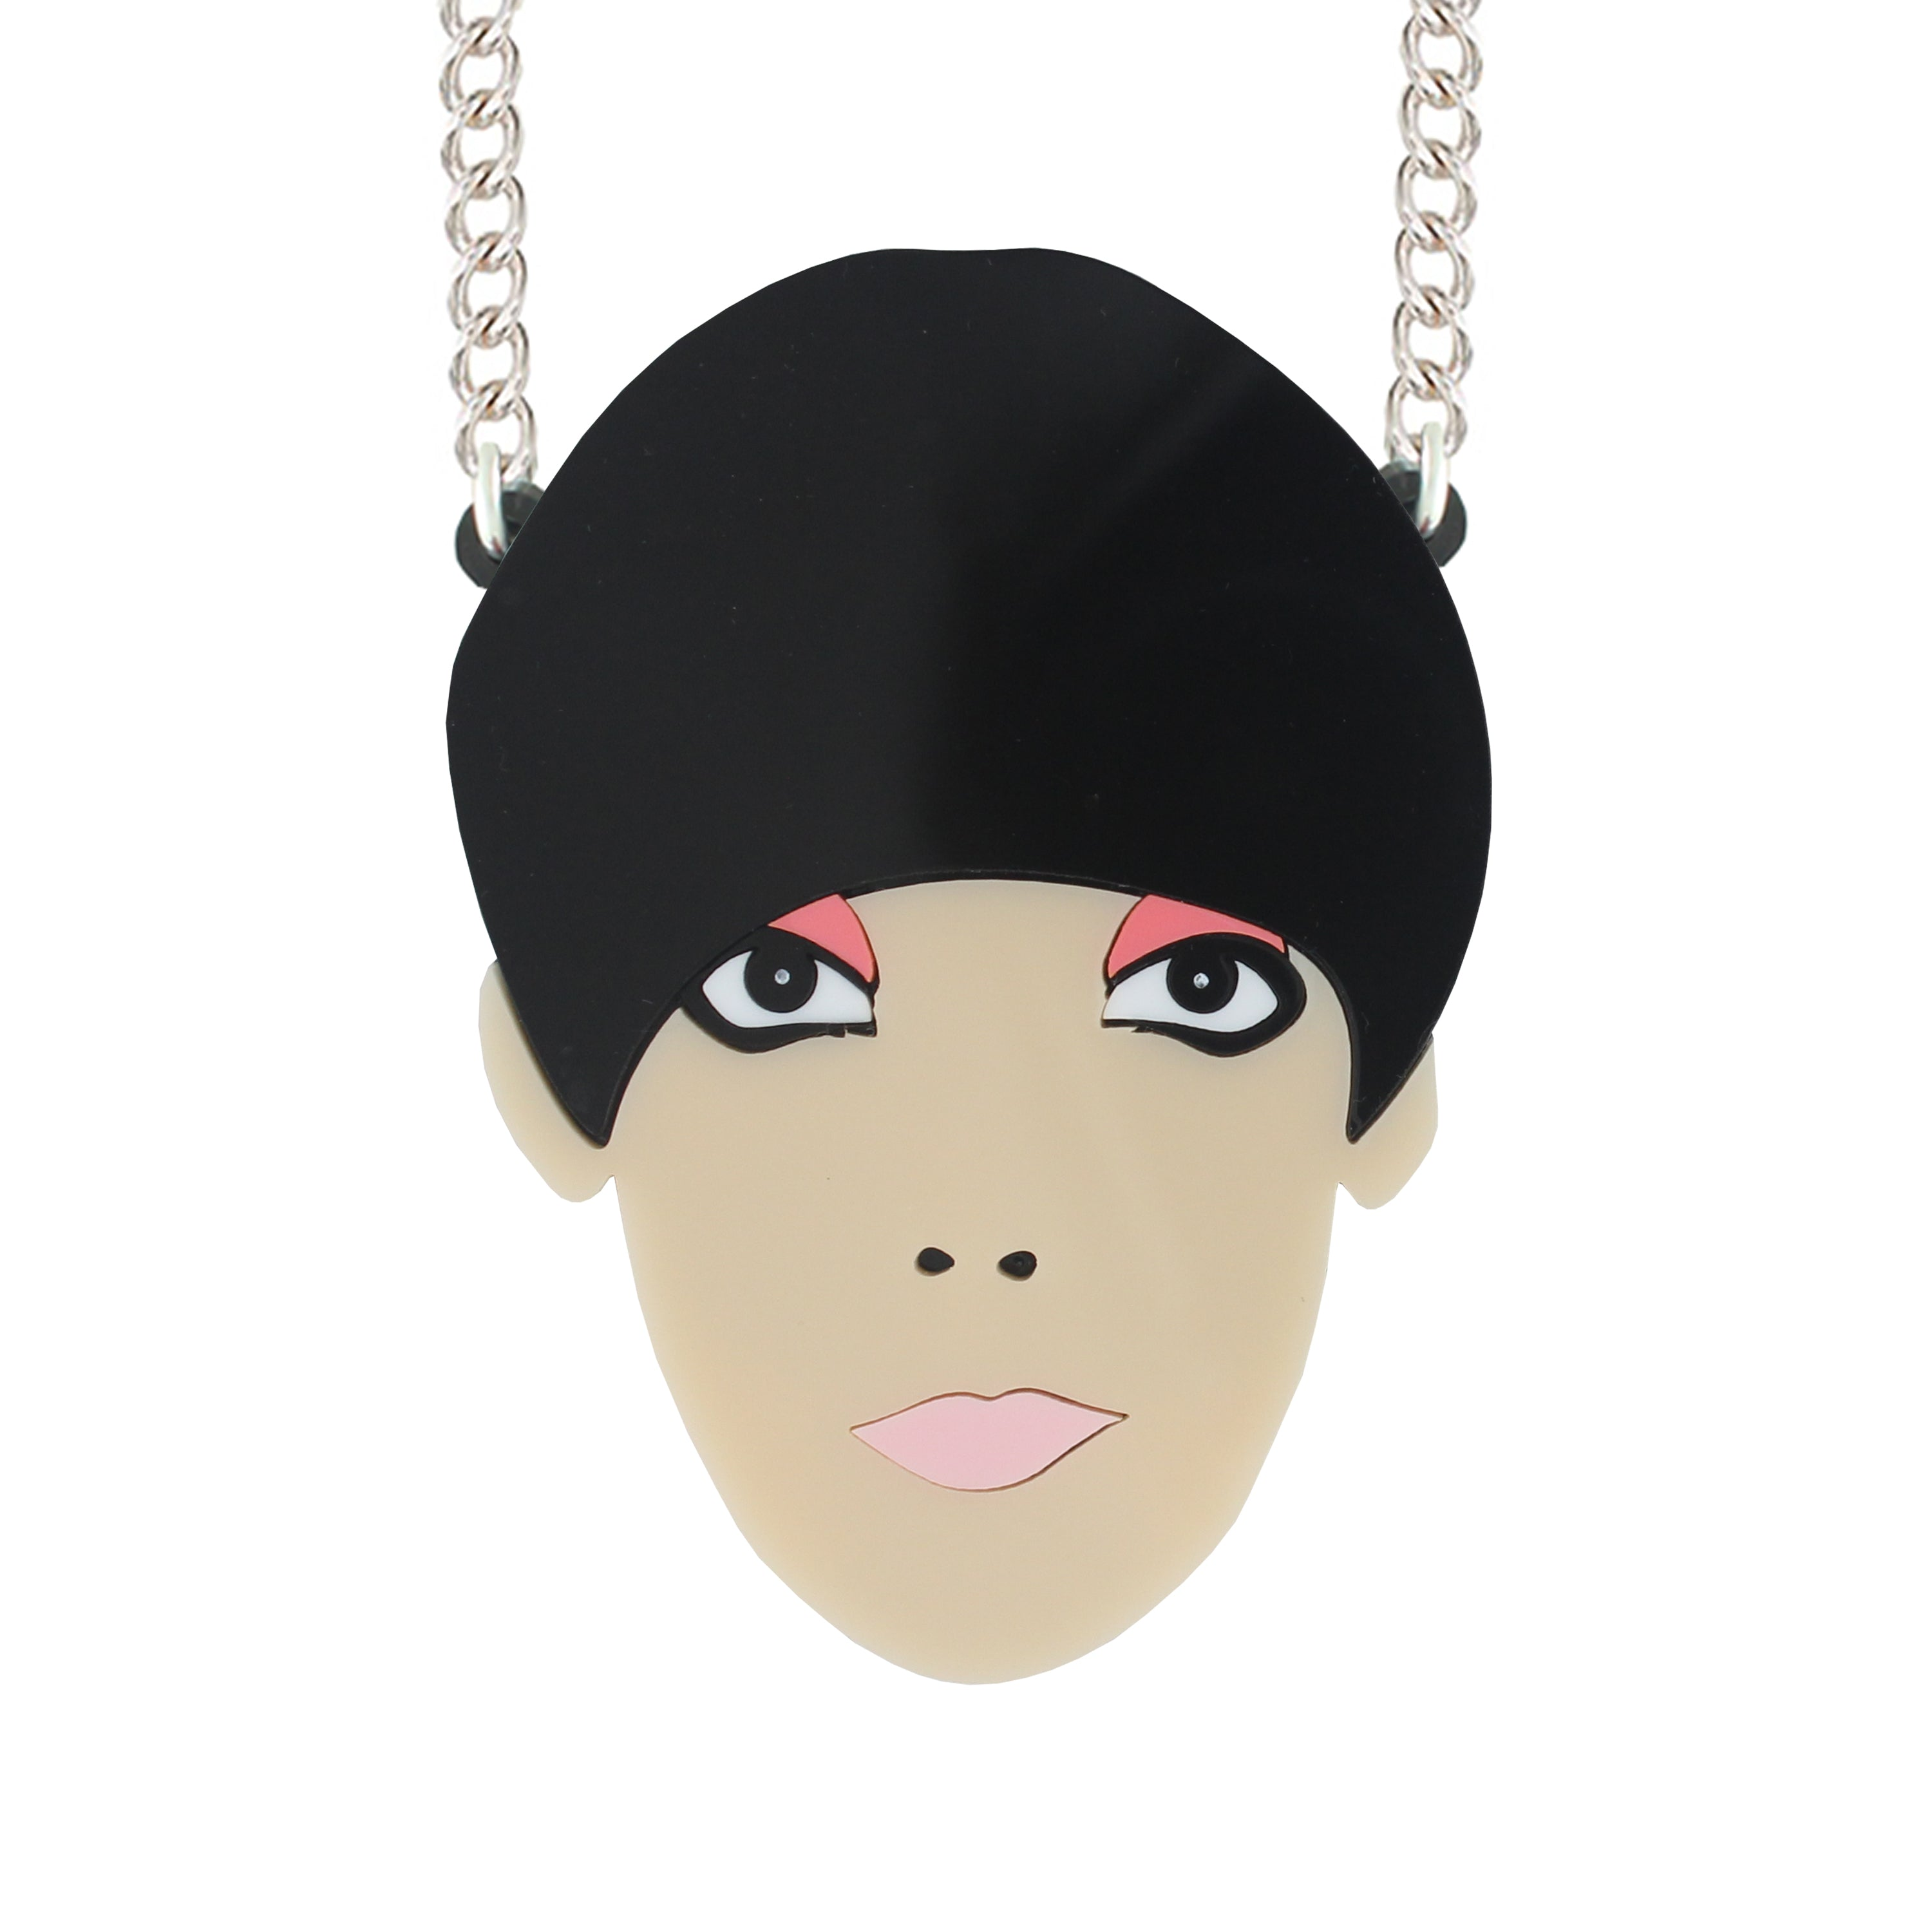 NEW! Peggy Moffitt necklace